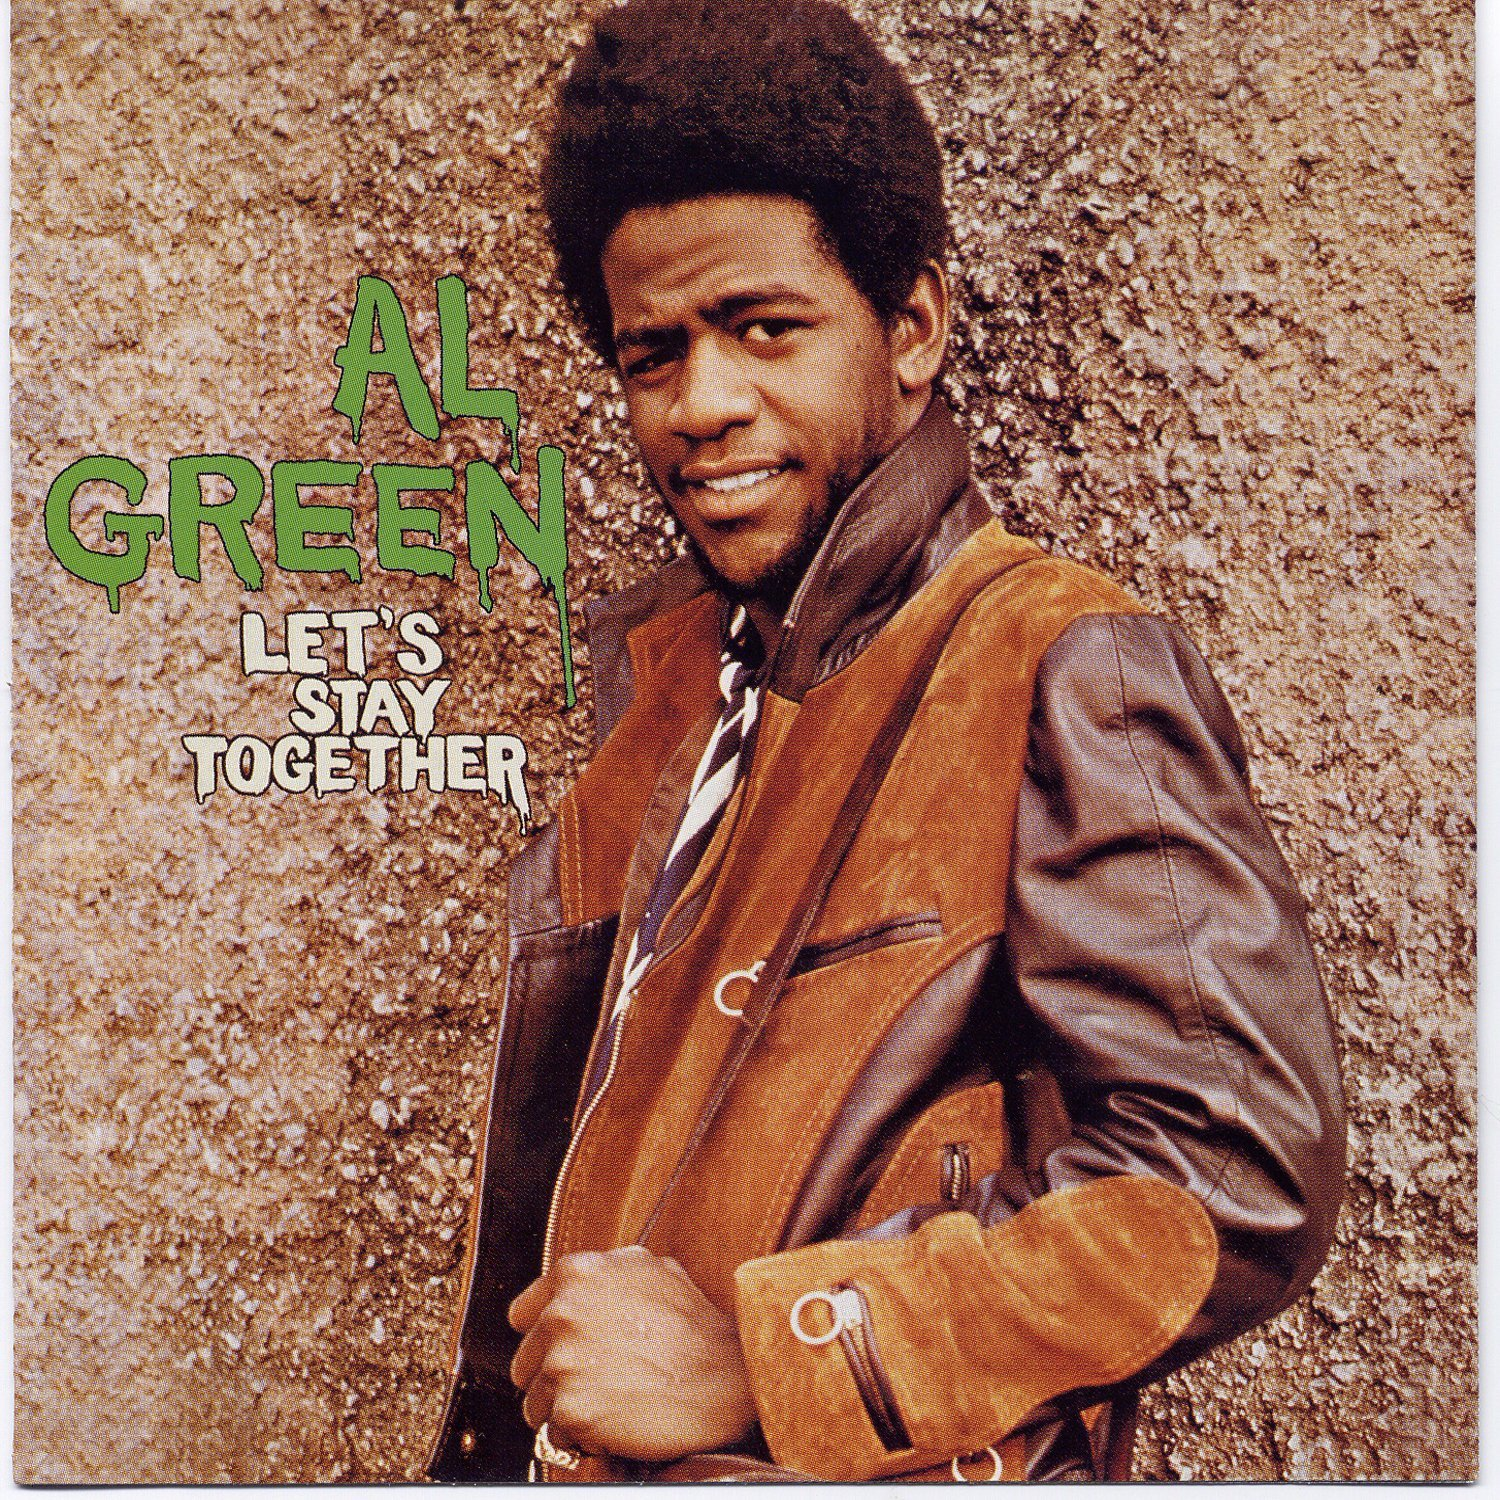 Wedding Songs – Al Green – Let's Stay Together